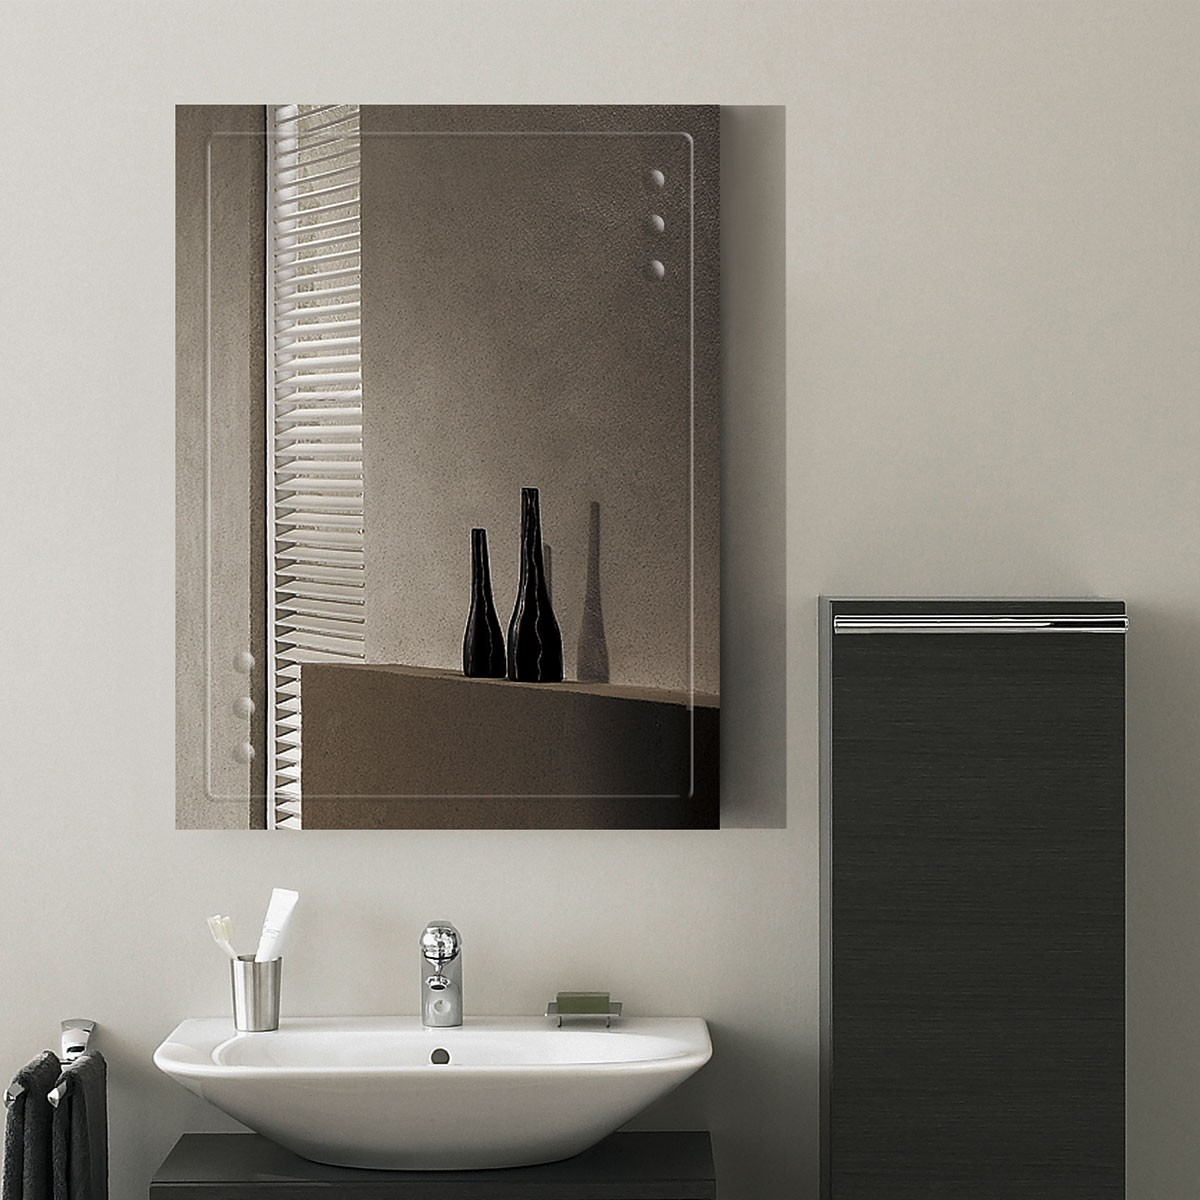 24 X 18 In Wall Mounted Rectangle Bathroom Mirror Dk Od